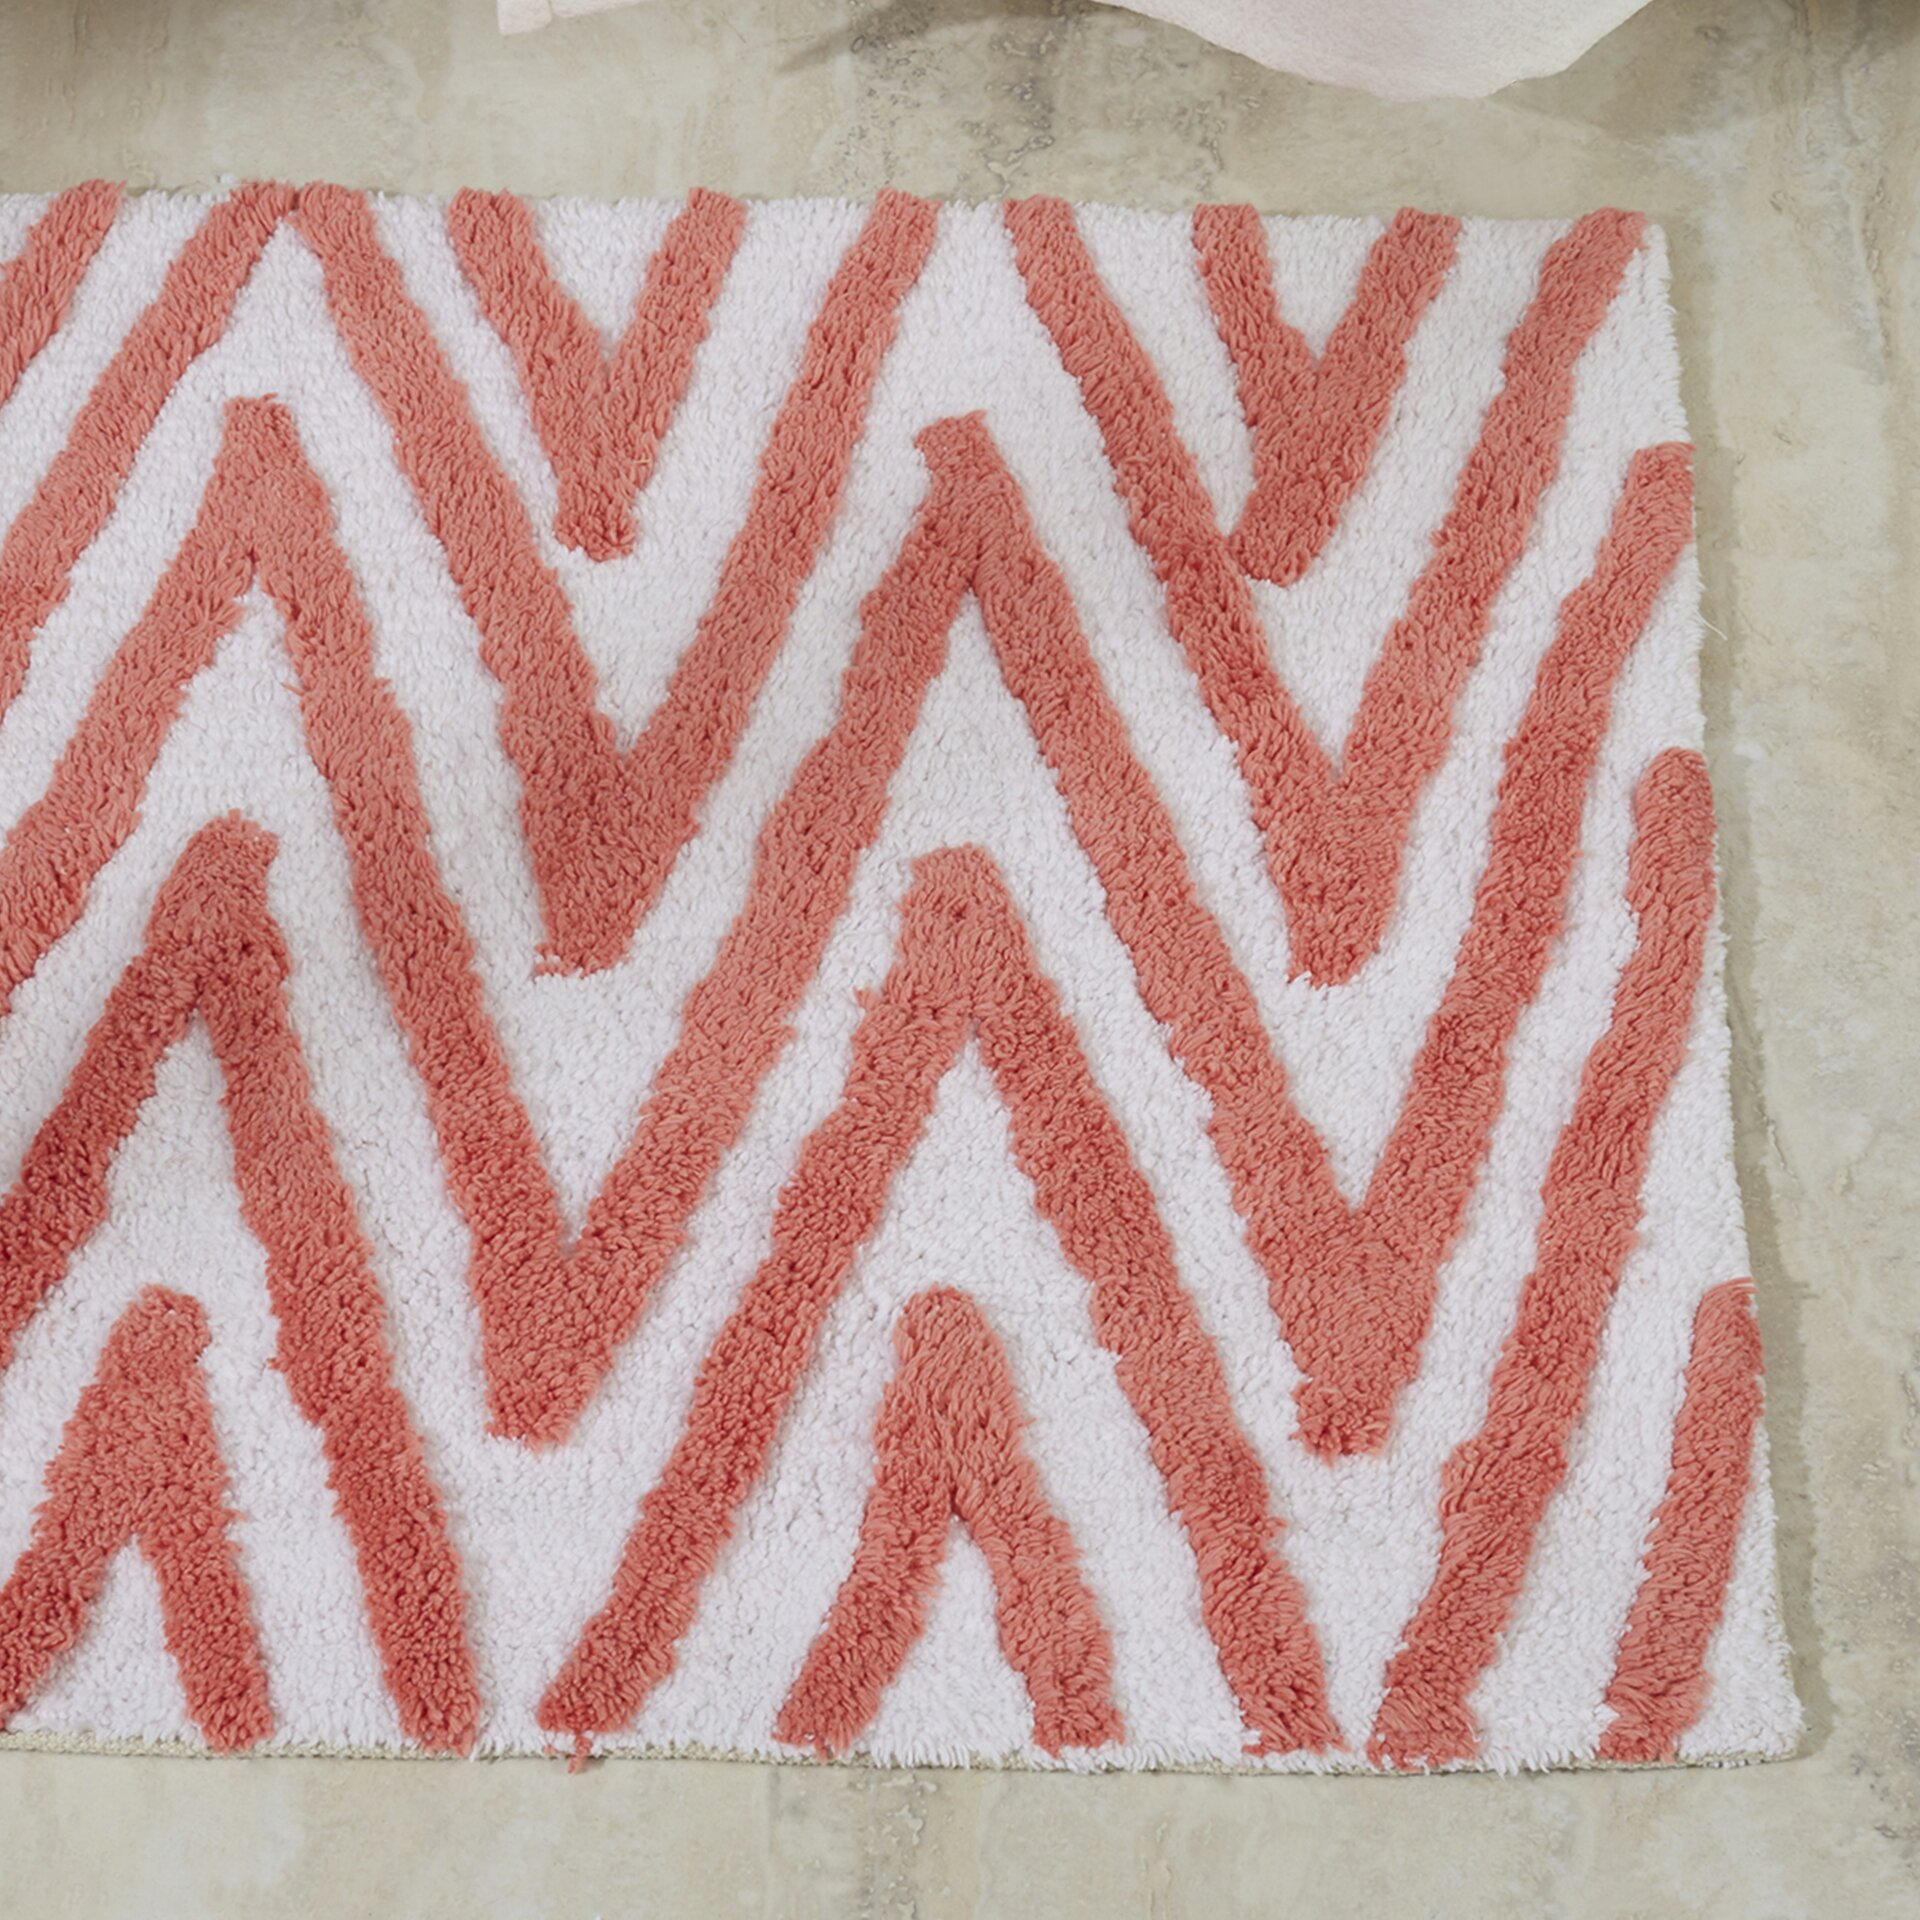 red bathroom rug set gallery   1yellowpage. Red Bathroom Rug Set great pictures   A1houston com